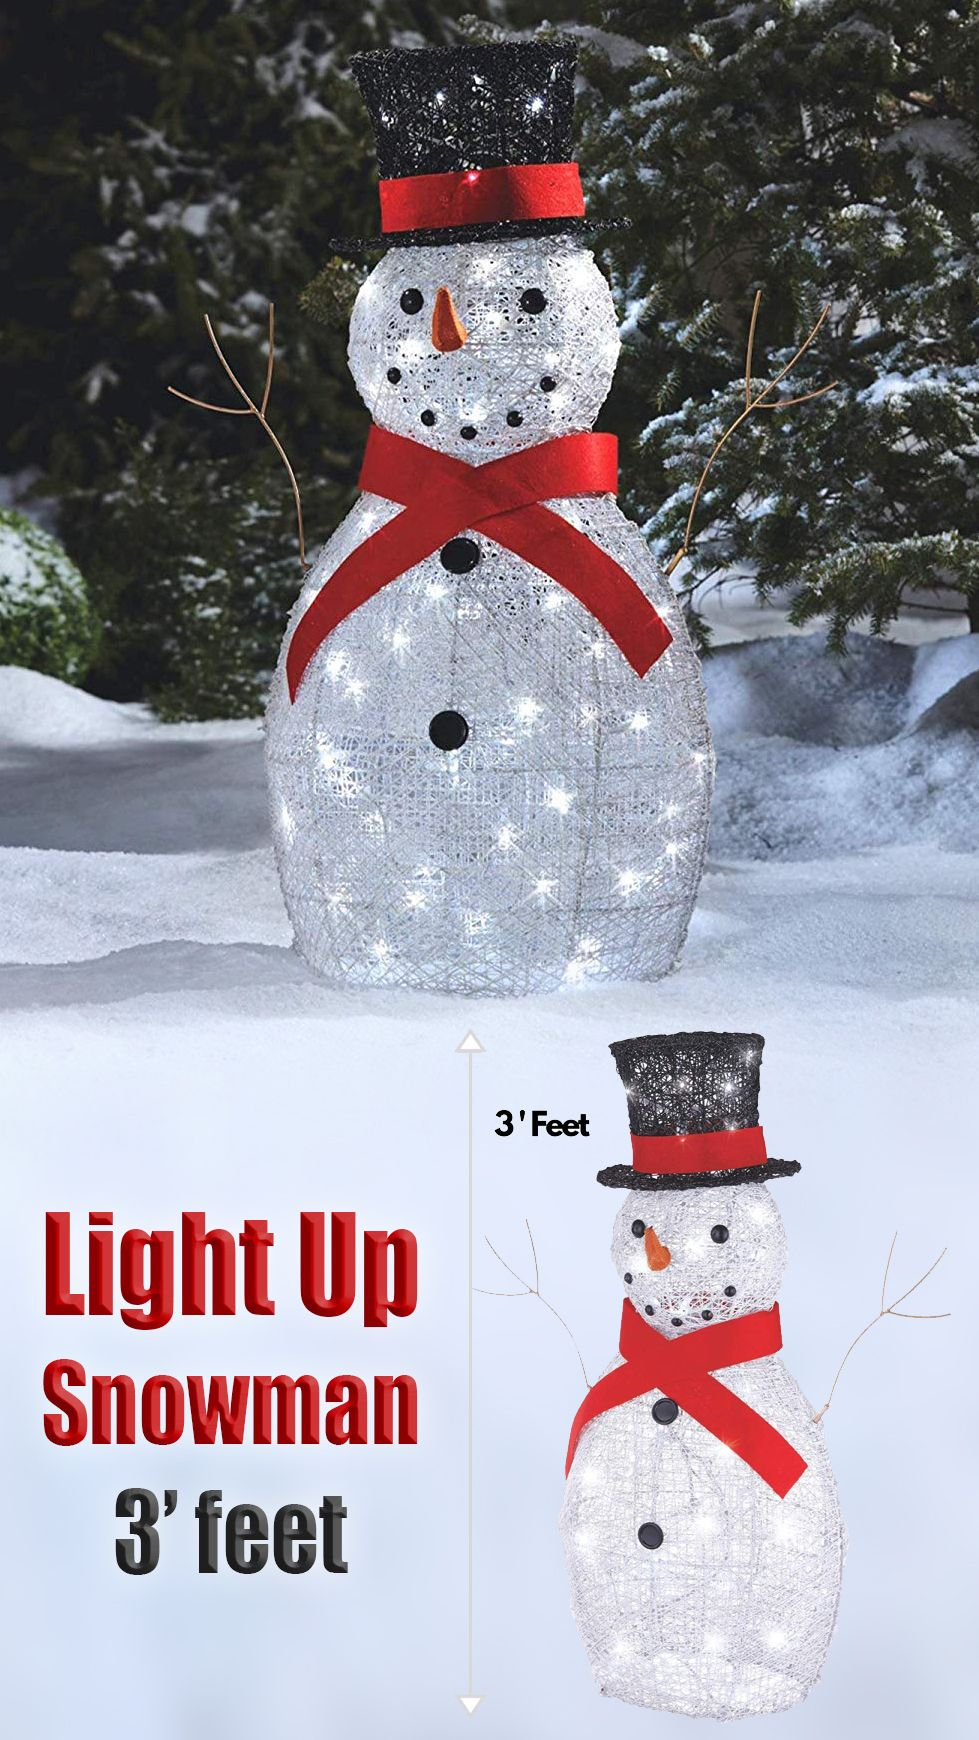 Our 3 Foot Light Up Snowman With A Top Hat Is The Perfect Christmas Decoration To Greet Family And Friends Over This Holiday Season Go Green With 70 High Effic